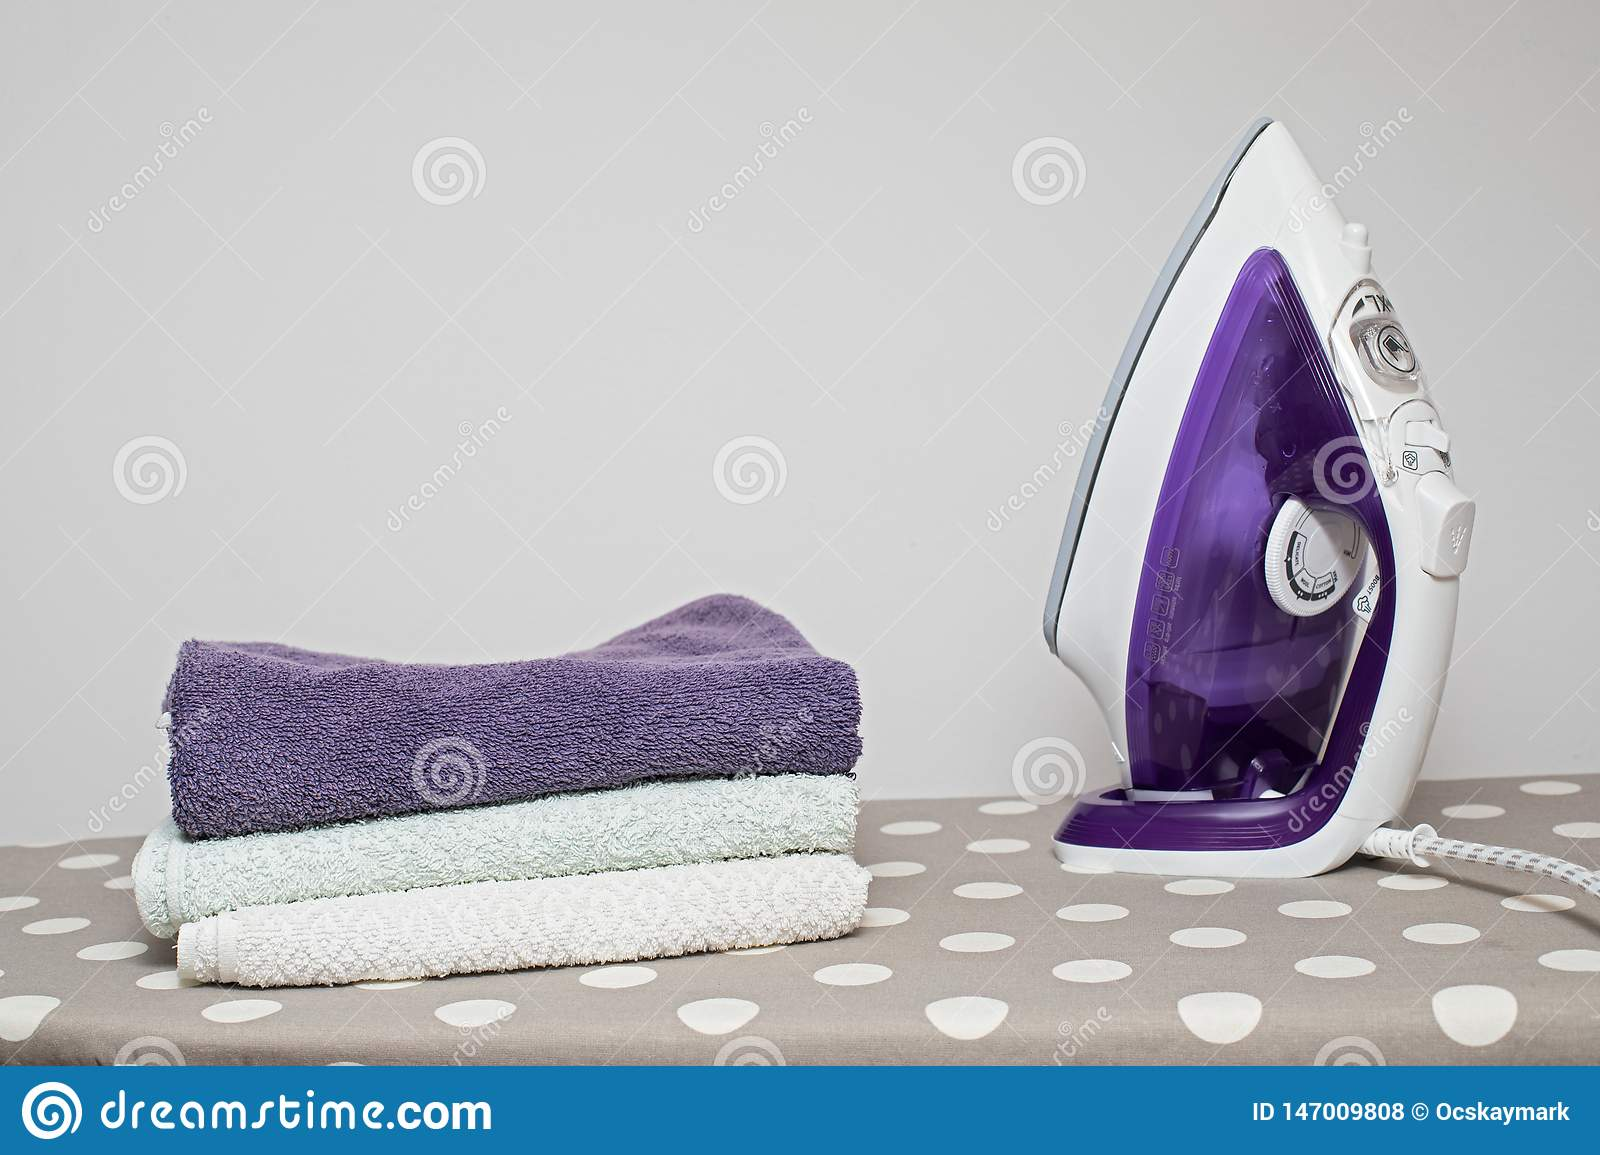 Flat iron and clean clothes on the board